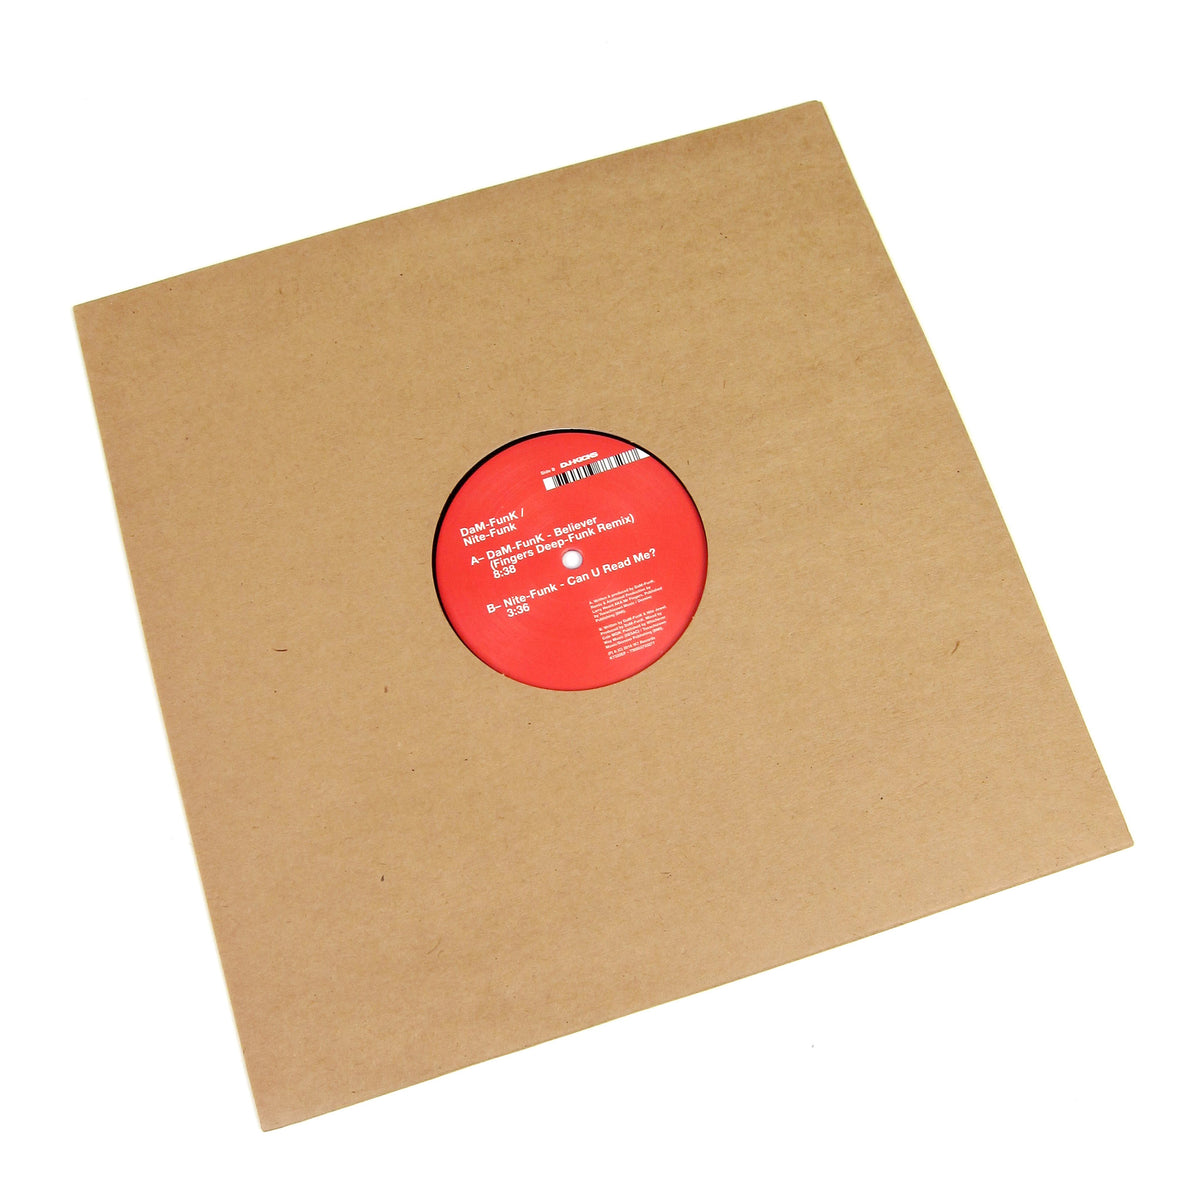 DaM-Funk / Nite-Funk: Believer (Mr. Fingers Remix) Vinyl 12""